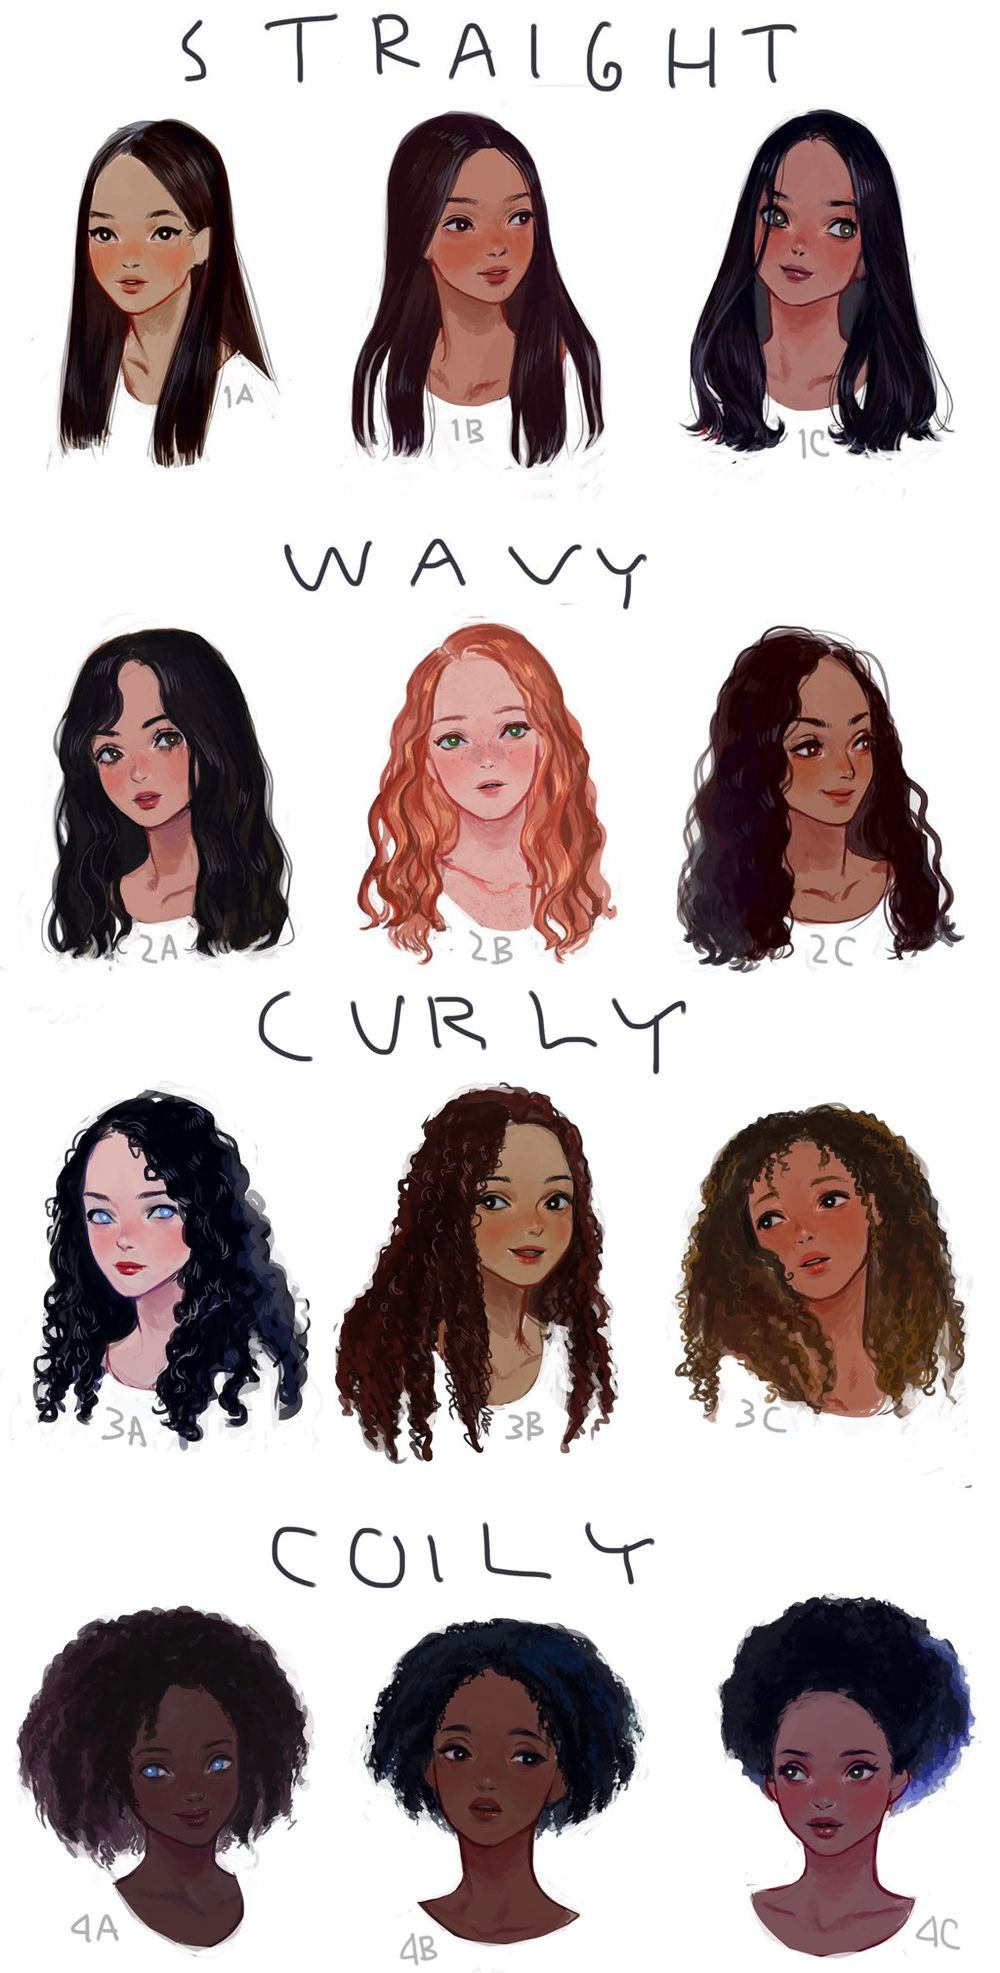 ALSO FOR PEOPLE THAT ARE LIKE MY HAIR IS SO CURLY UGHH AND IM LIKE